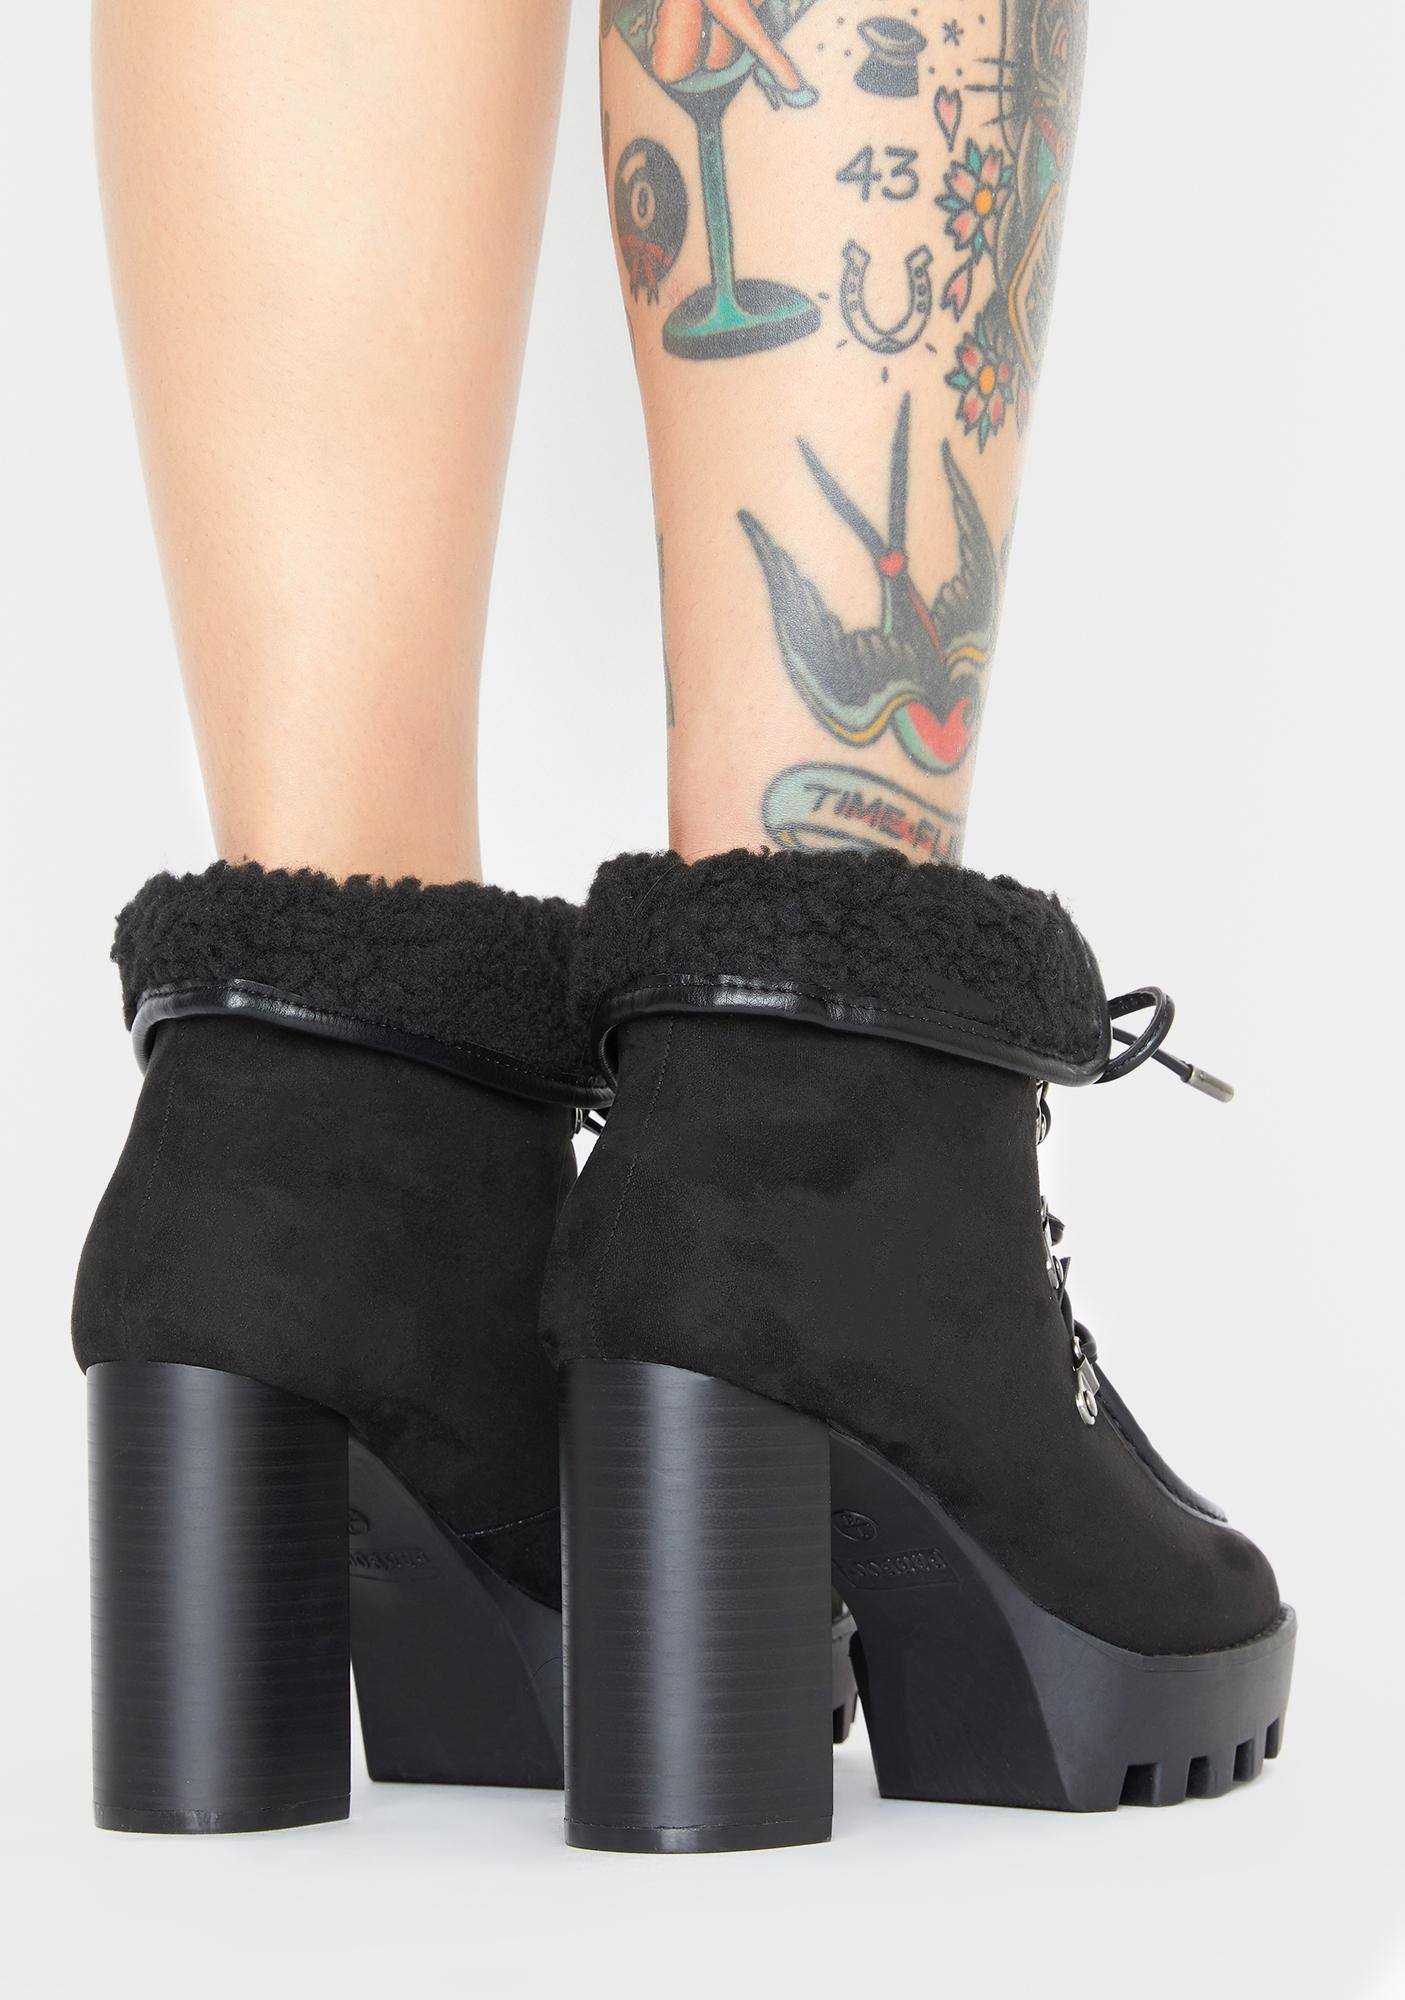 Wicked Intensity Ankle Boots